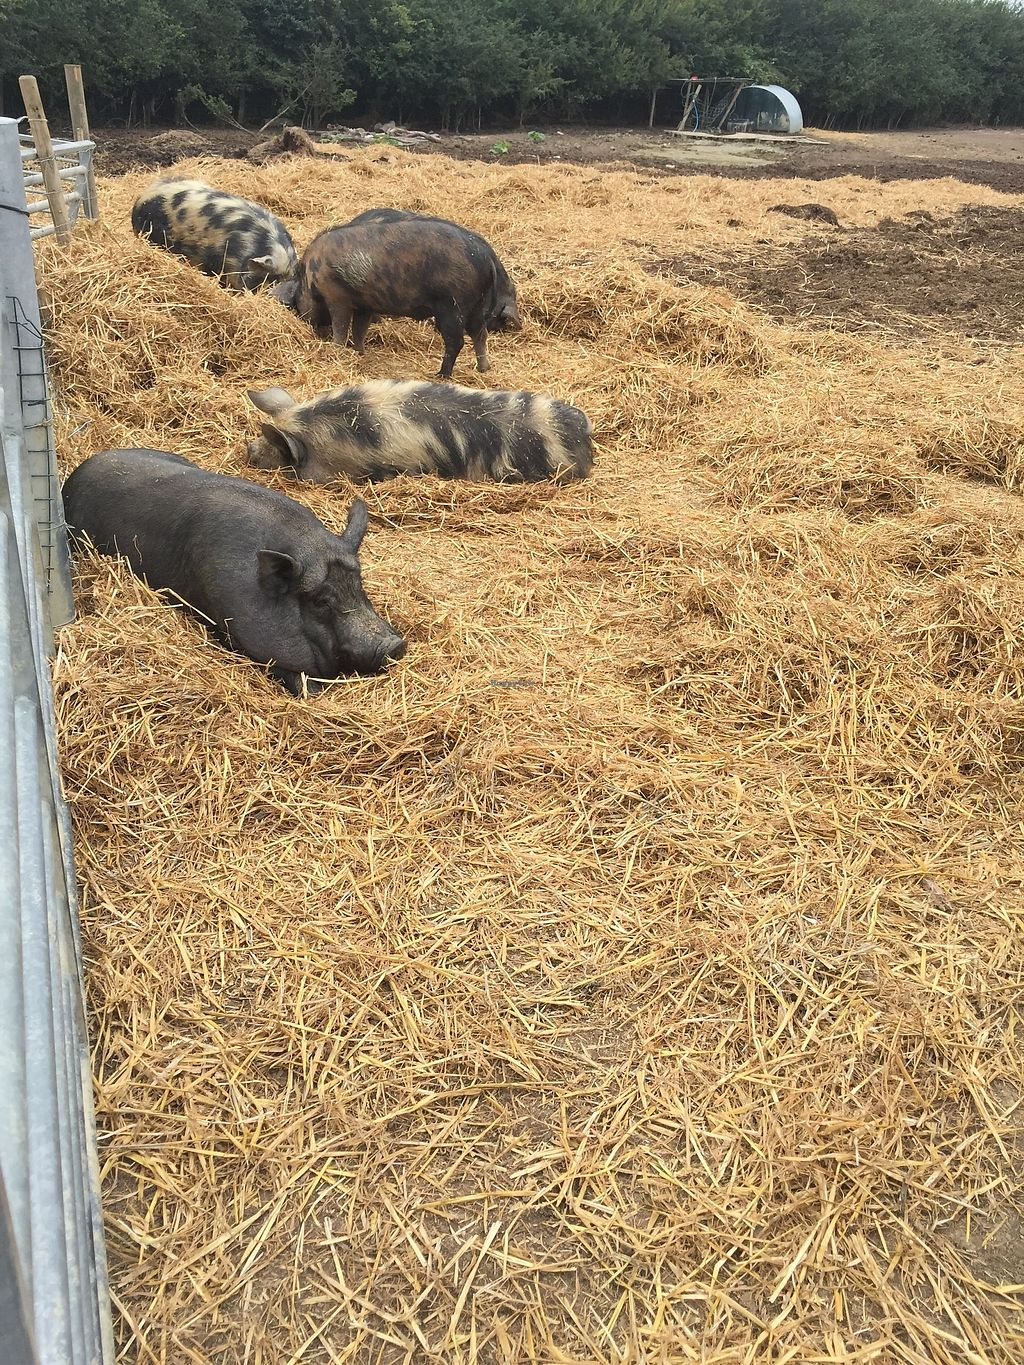 """Photo of The Retreat Animal Rescue Farm Sanctuary and Cafe  by <a href=""""/members/profile/TARAMCDONALD"""">TARAMCDONALD</a> <br/>Some happy pigs  <br/> July 22, 2017  - <a href='/contact/abuse/image/93600/283390'>Report</a>"""